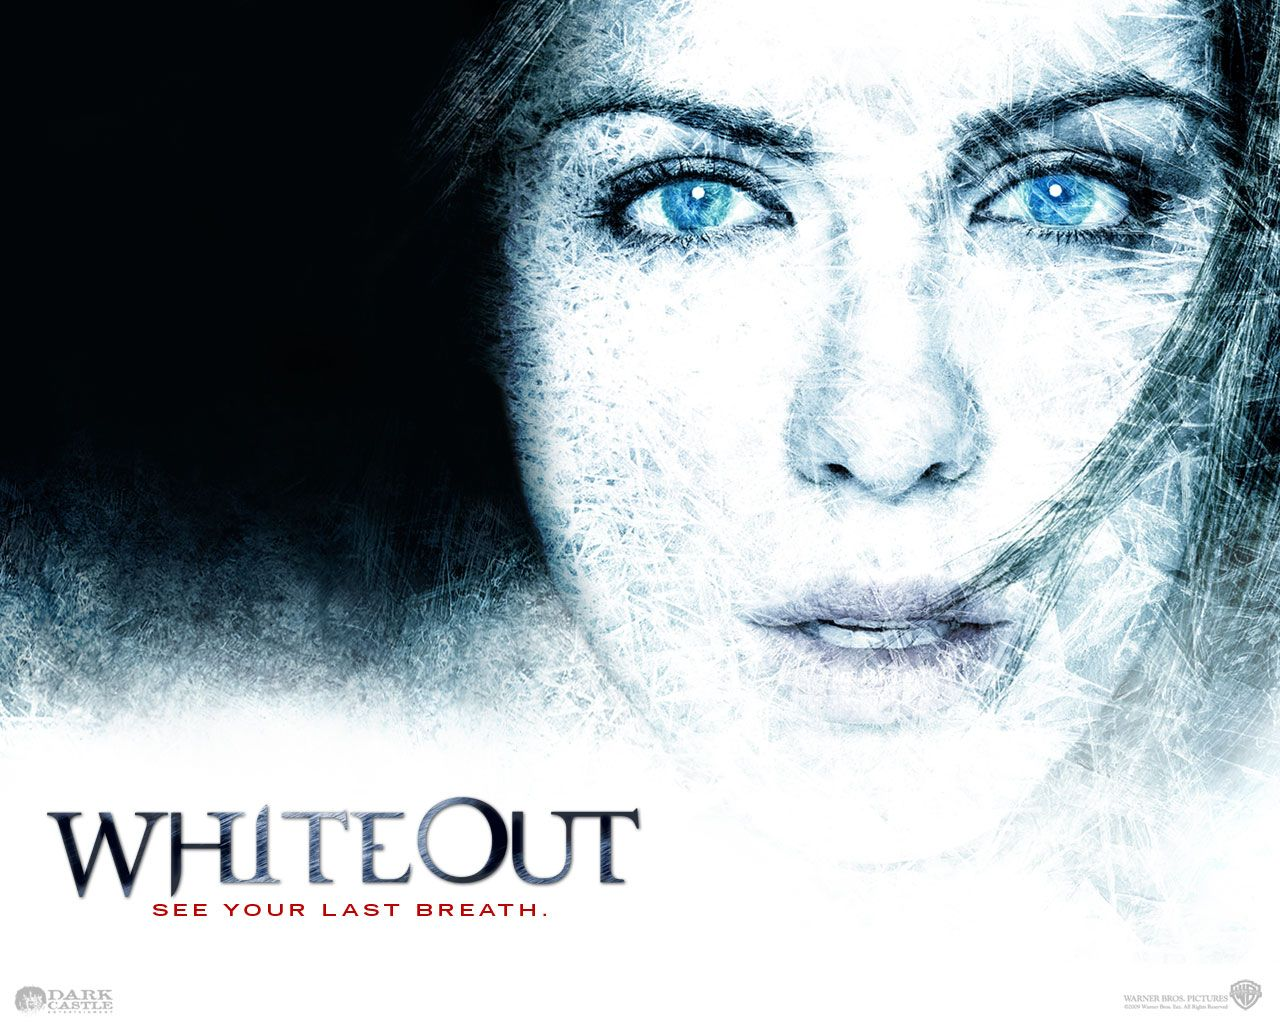 http://1.bp.blogspot.com/_ViNMqzLDw5g/TKusjjeld2I/AAAAAAAAG_Q/vP2WGtyH5eU/s1600/Kate_Beckinsale_in_Whiteout_Wallpaper_4_1280.jpg